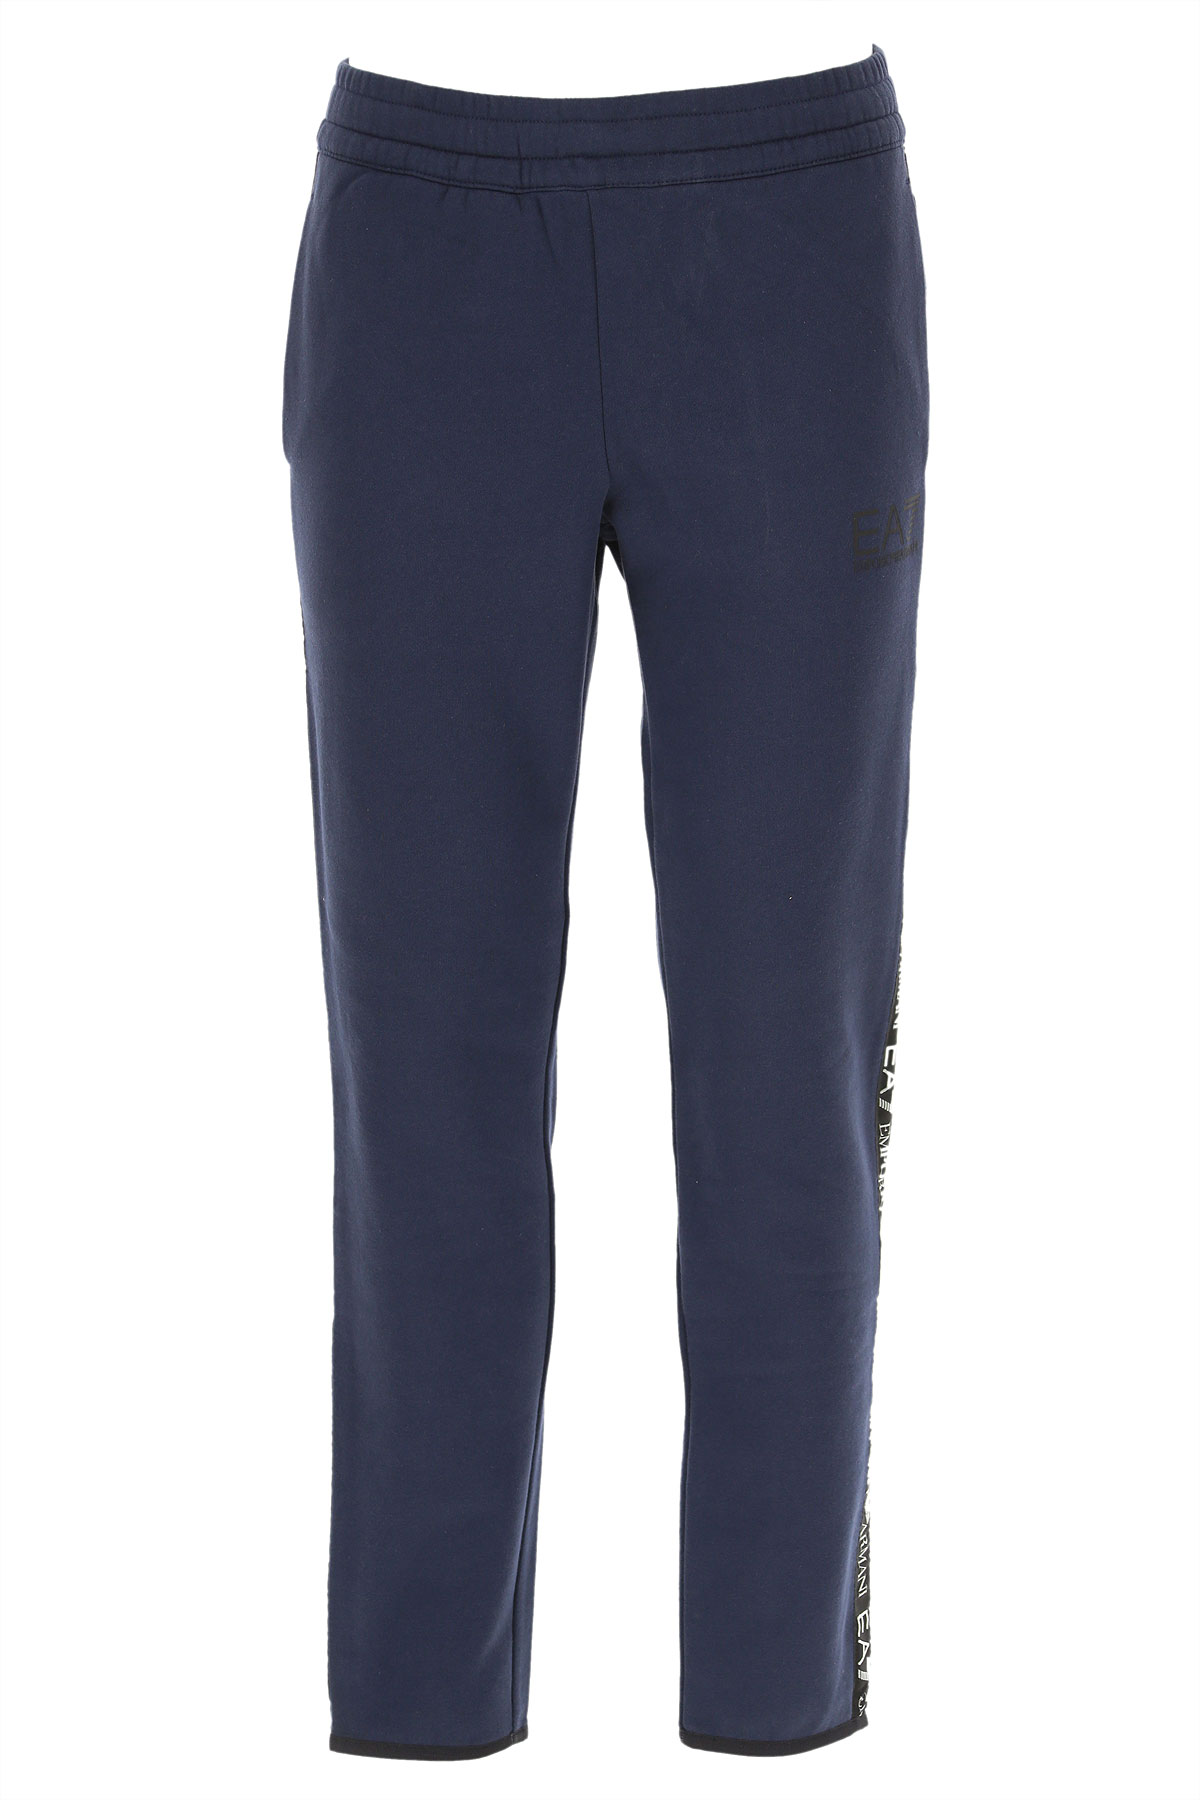 Emporio Armani Men's Sportswear for Gym Workouts and Running On Sale in Outlet, Blue Navy, Cotton, 2019, L M XL XXL